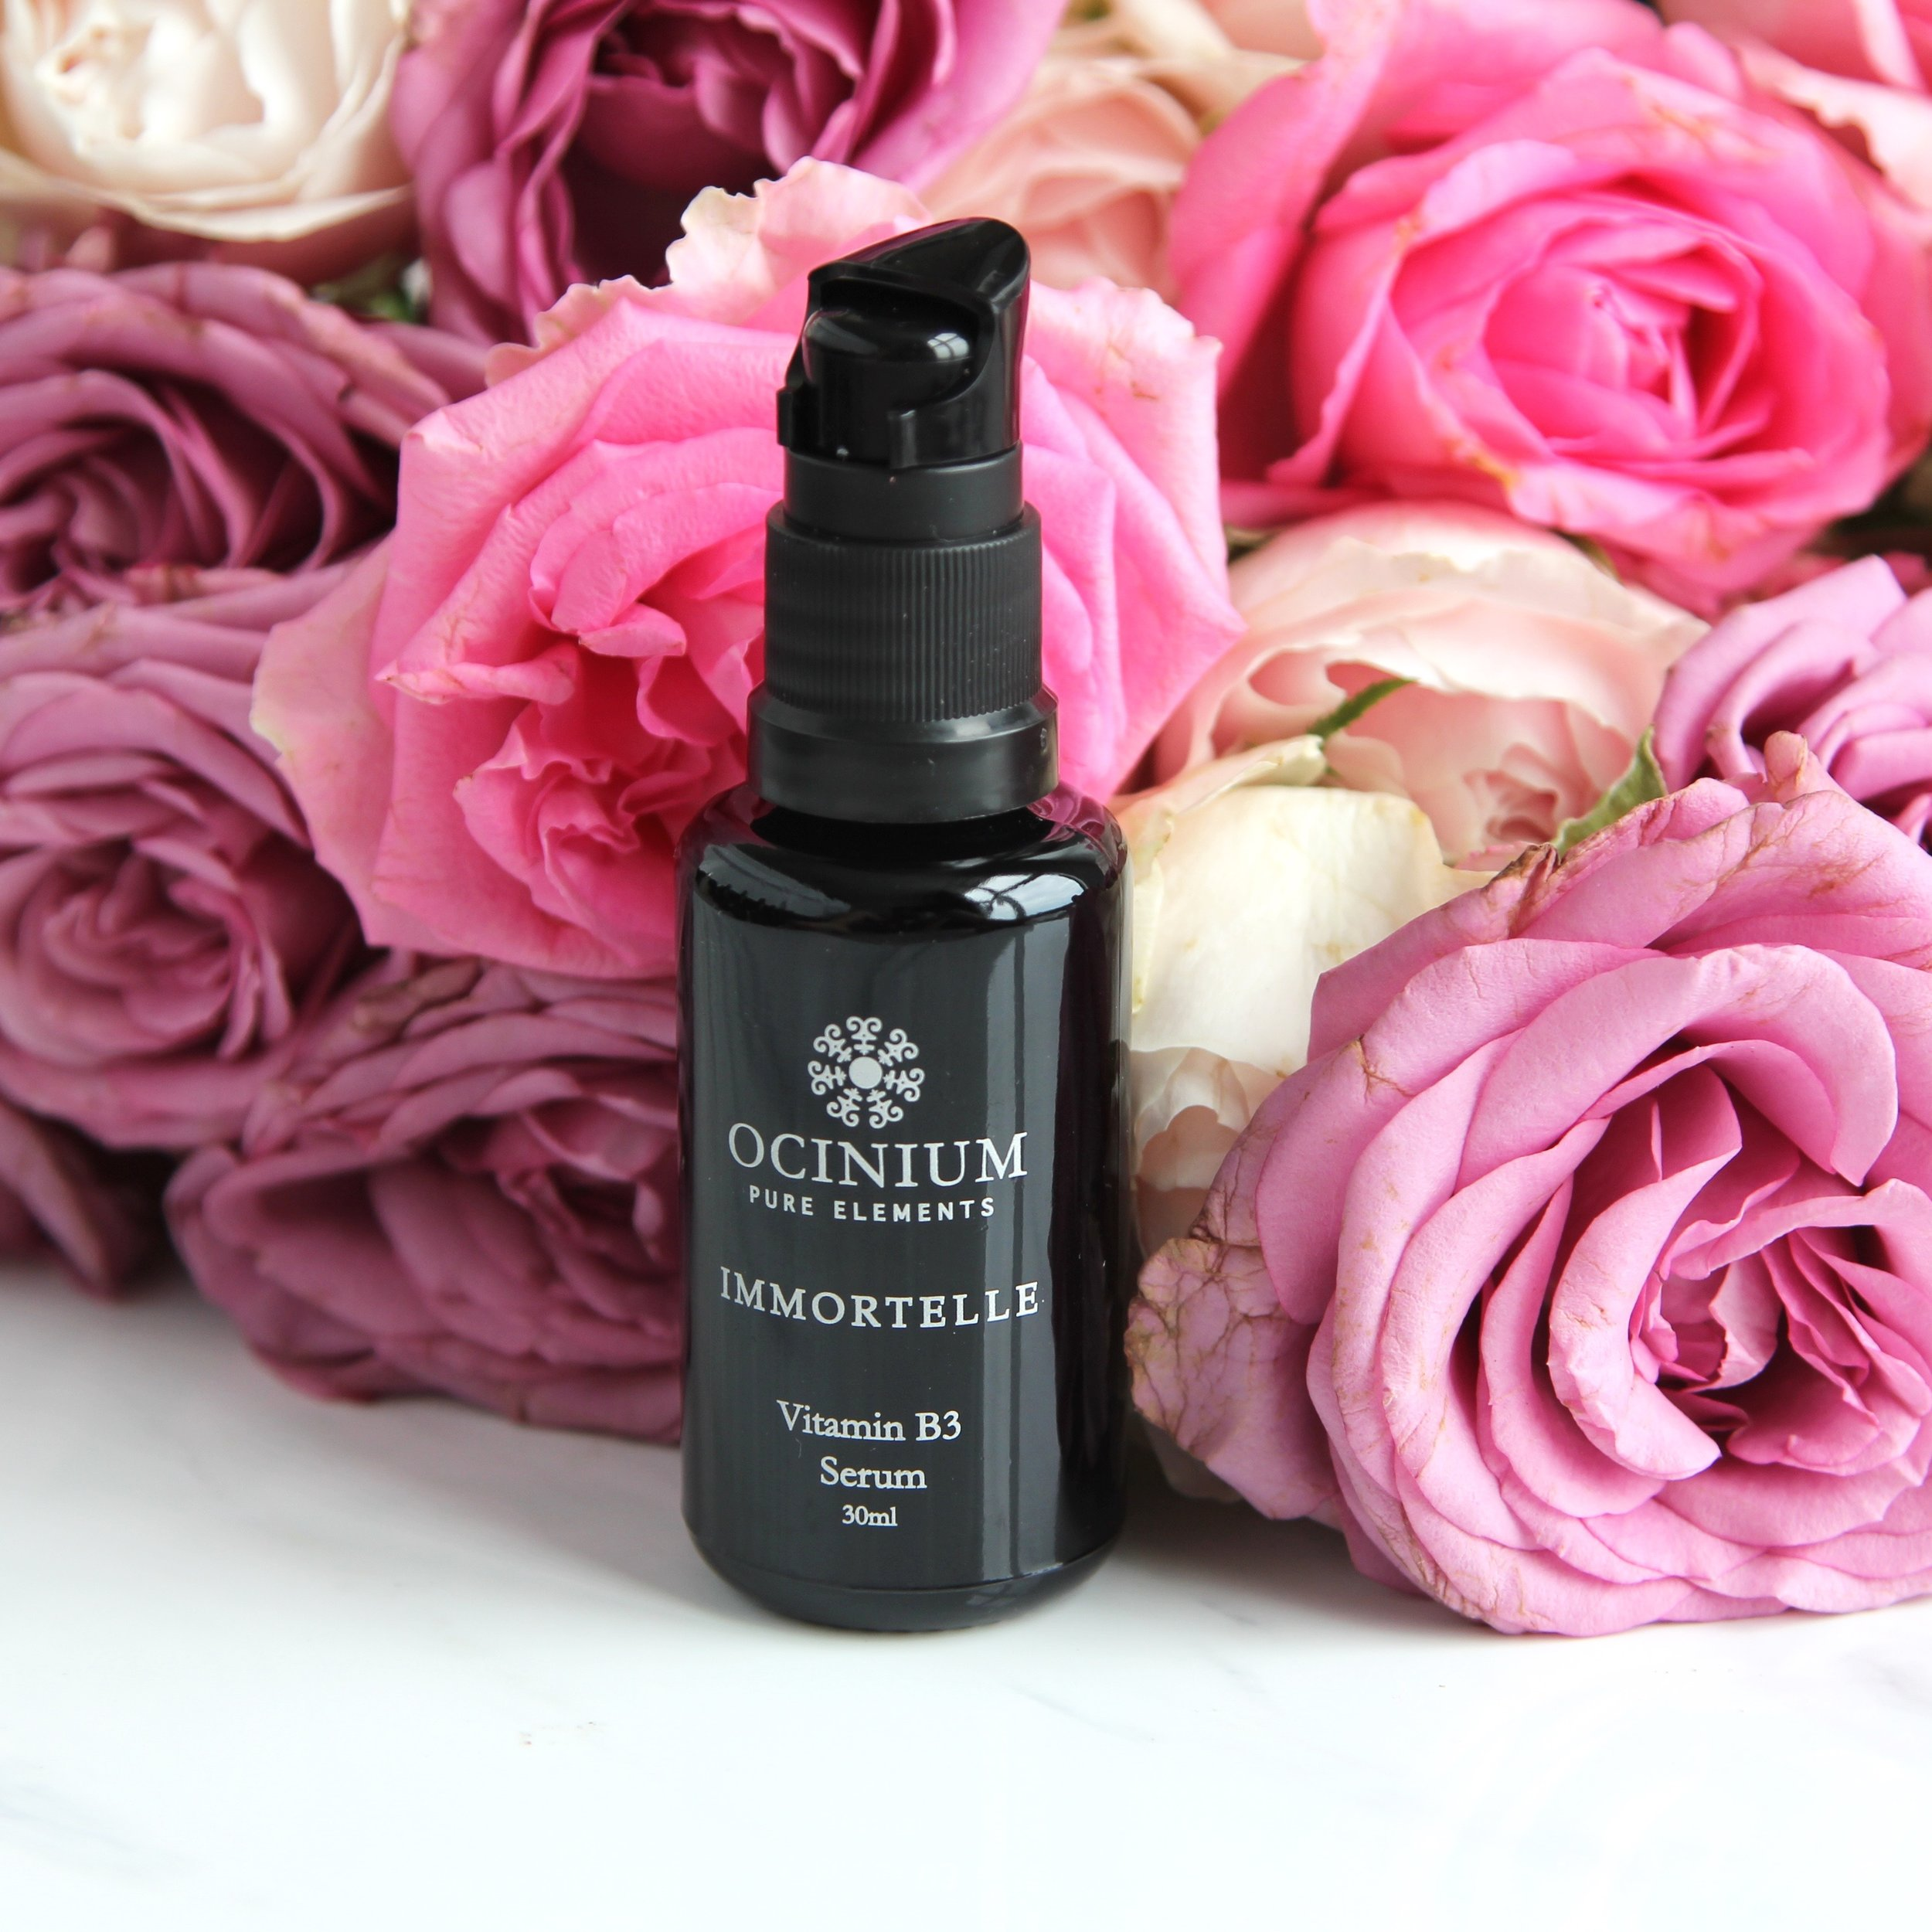 Immortelle B3 Serum is a weightless serum with a concentrated complex of Niacinamide (Vitamin B3) to boost the skins immune response, promote cellular repair and target hyper- pigmentation, restoring the skin's clarity and tone. Key botanical extracts of Gotu Kola, Calendula and Chamomile are well known for their therapeutic benefits to reduce inflammation, increase circulation, facilitate collagen production and healing of the underlying skins structure - Cassnndra Hilton